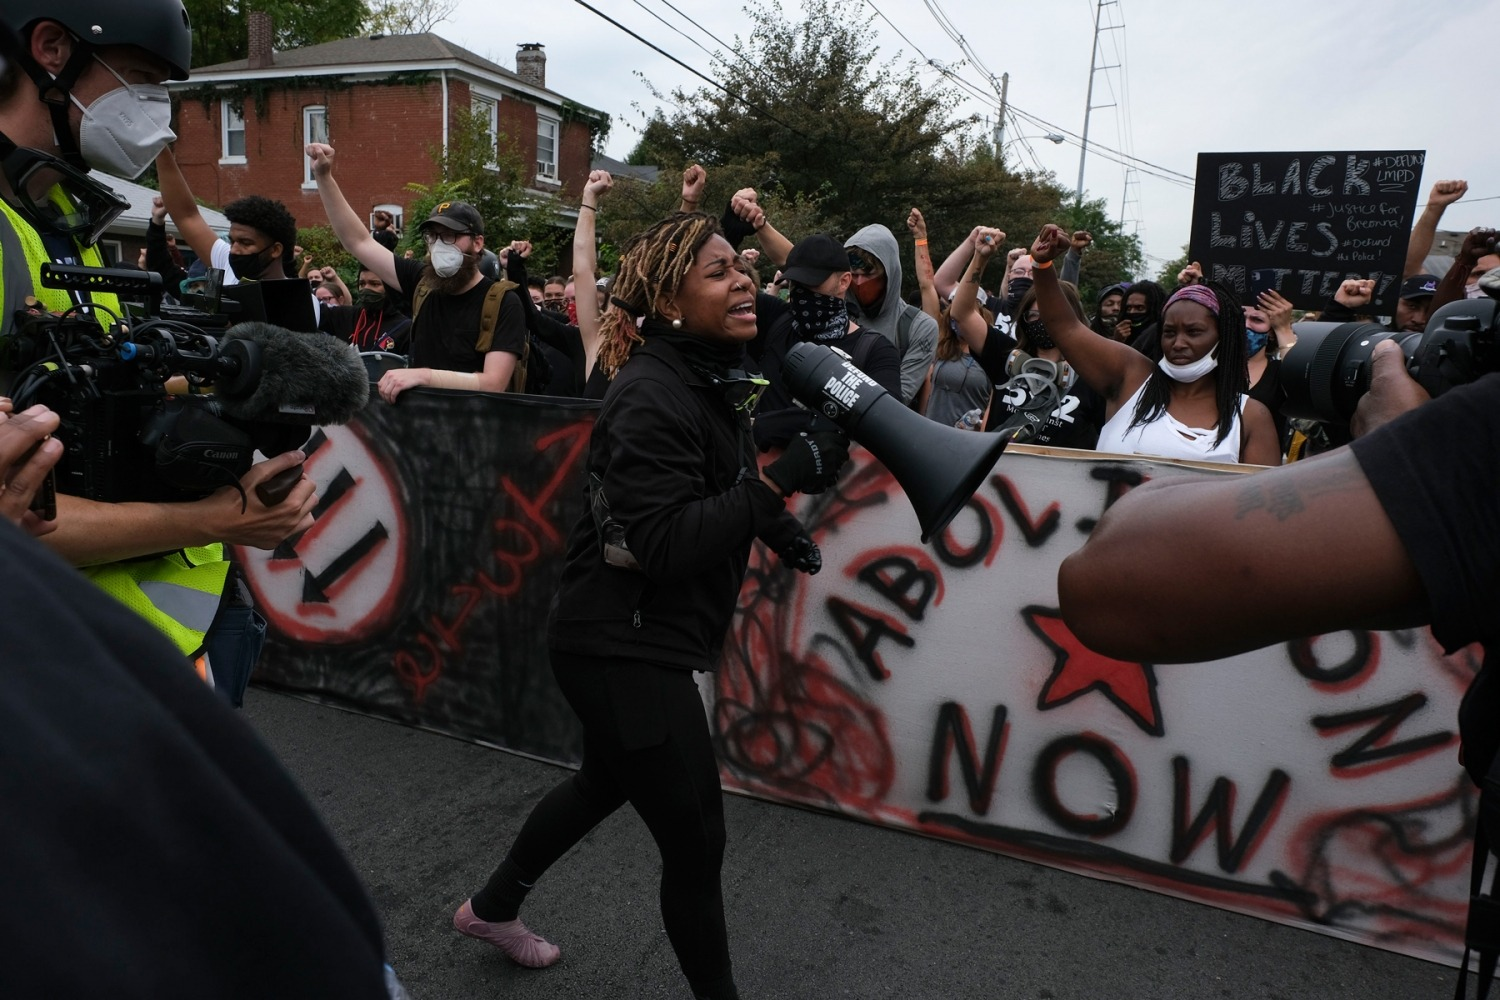 """A protestor calls for the crowd to """"Say Her Name Breonna Taylor"""" while marching in downtown Louisville, Kentucky, on September 23, 2020, after a judge announced the charges brought by a grand jury against Detective Brett Hankison, one of three police officers involved in the fatal shooting of Breonna Taylor in March. - Hankison was charged today, September 23, with three counts of """"wanton endangerment"""" in connection with the shooting of Taylor, a 26-year-old black woman whose name has become a rallying cry for the Black Lives Matter movement. (Photo by Jeff Dean / AFP) (Photo by JEFF DEAN/AFP via Getty Images)"""